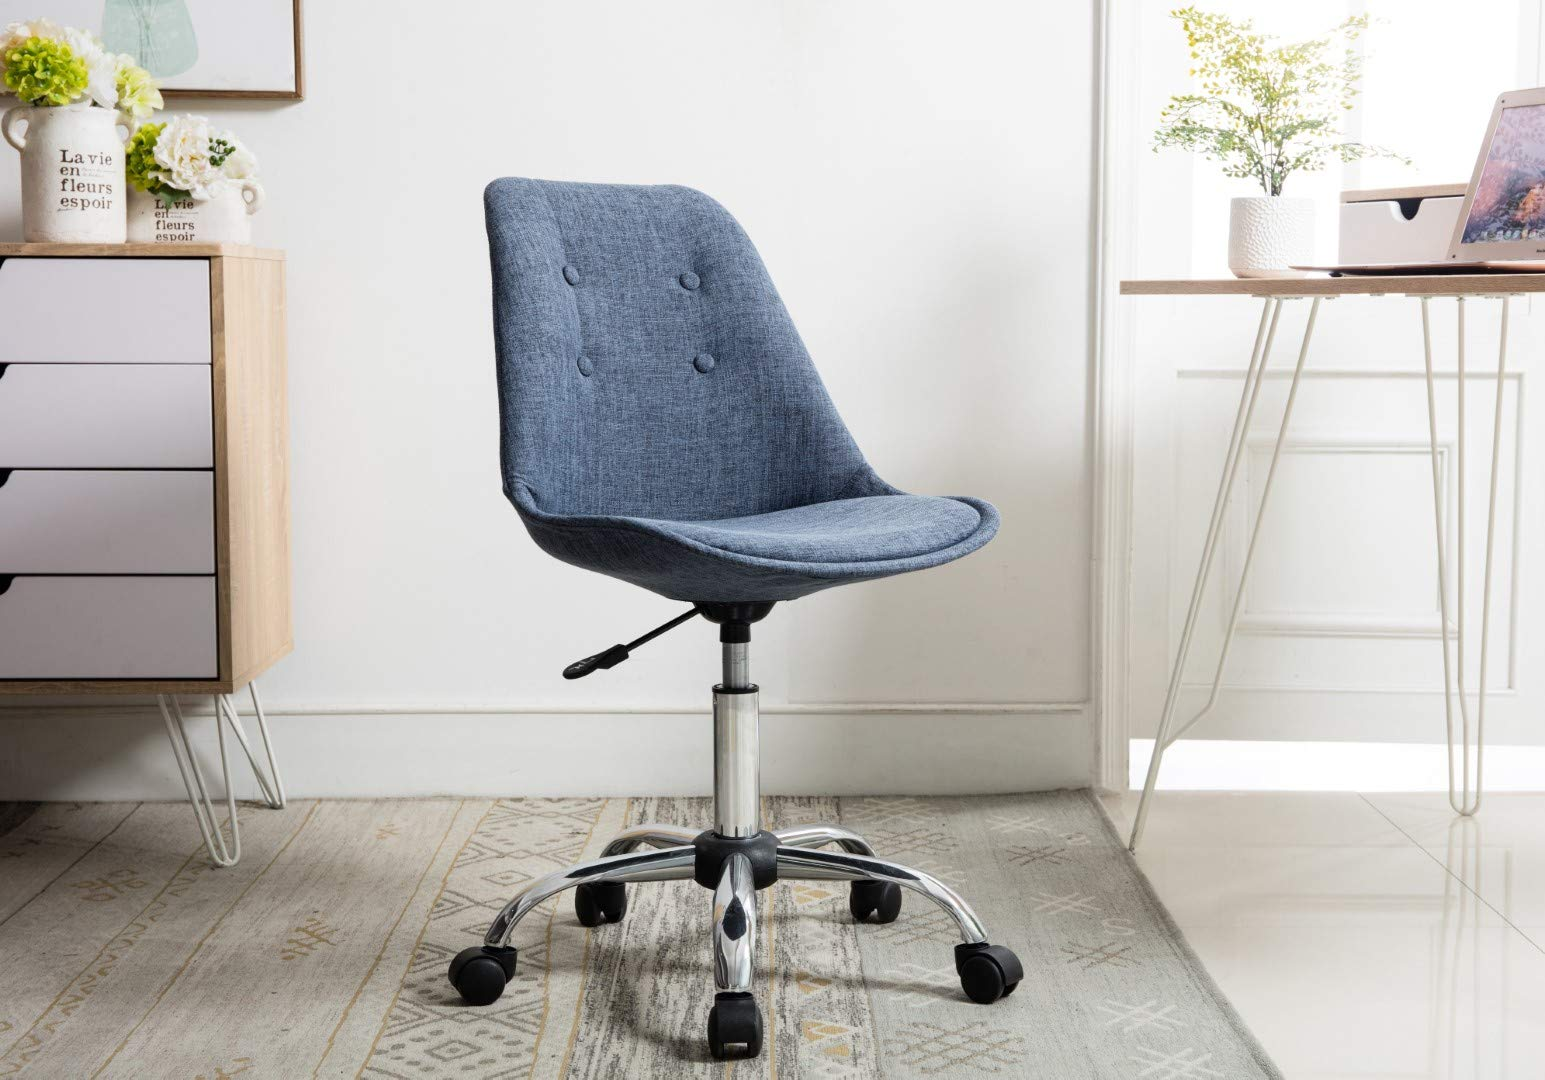 Porthos Home Office Chair, Designer Office Chairs with Wheels, Premium Quality Comfort 360 Degree Swivel Height Adjustable, One Size, Blue by Porthos Home